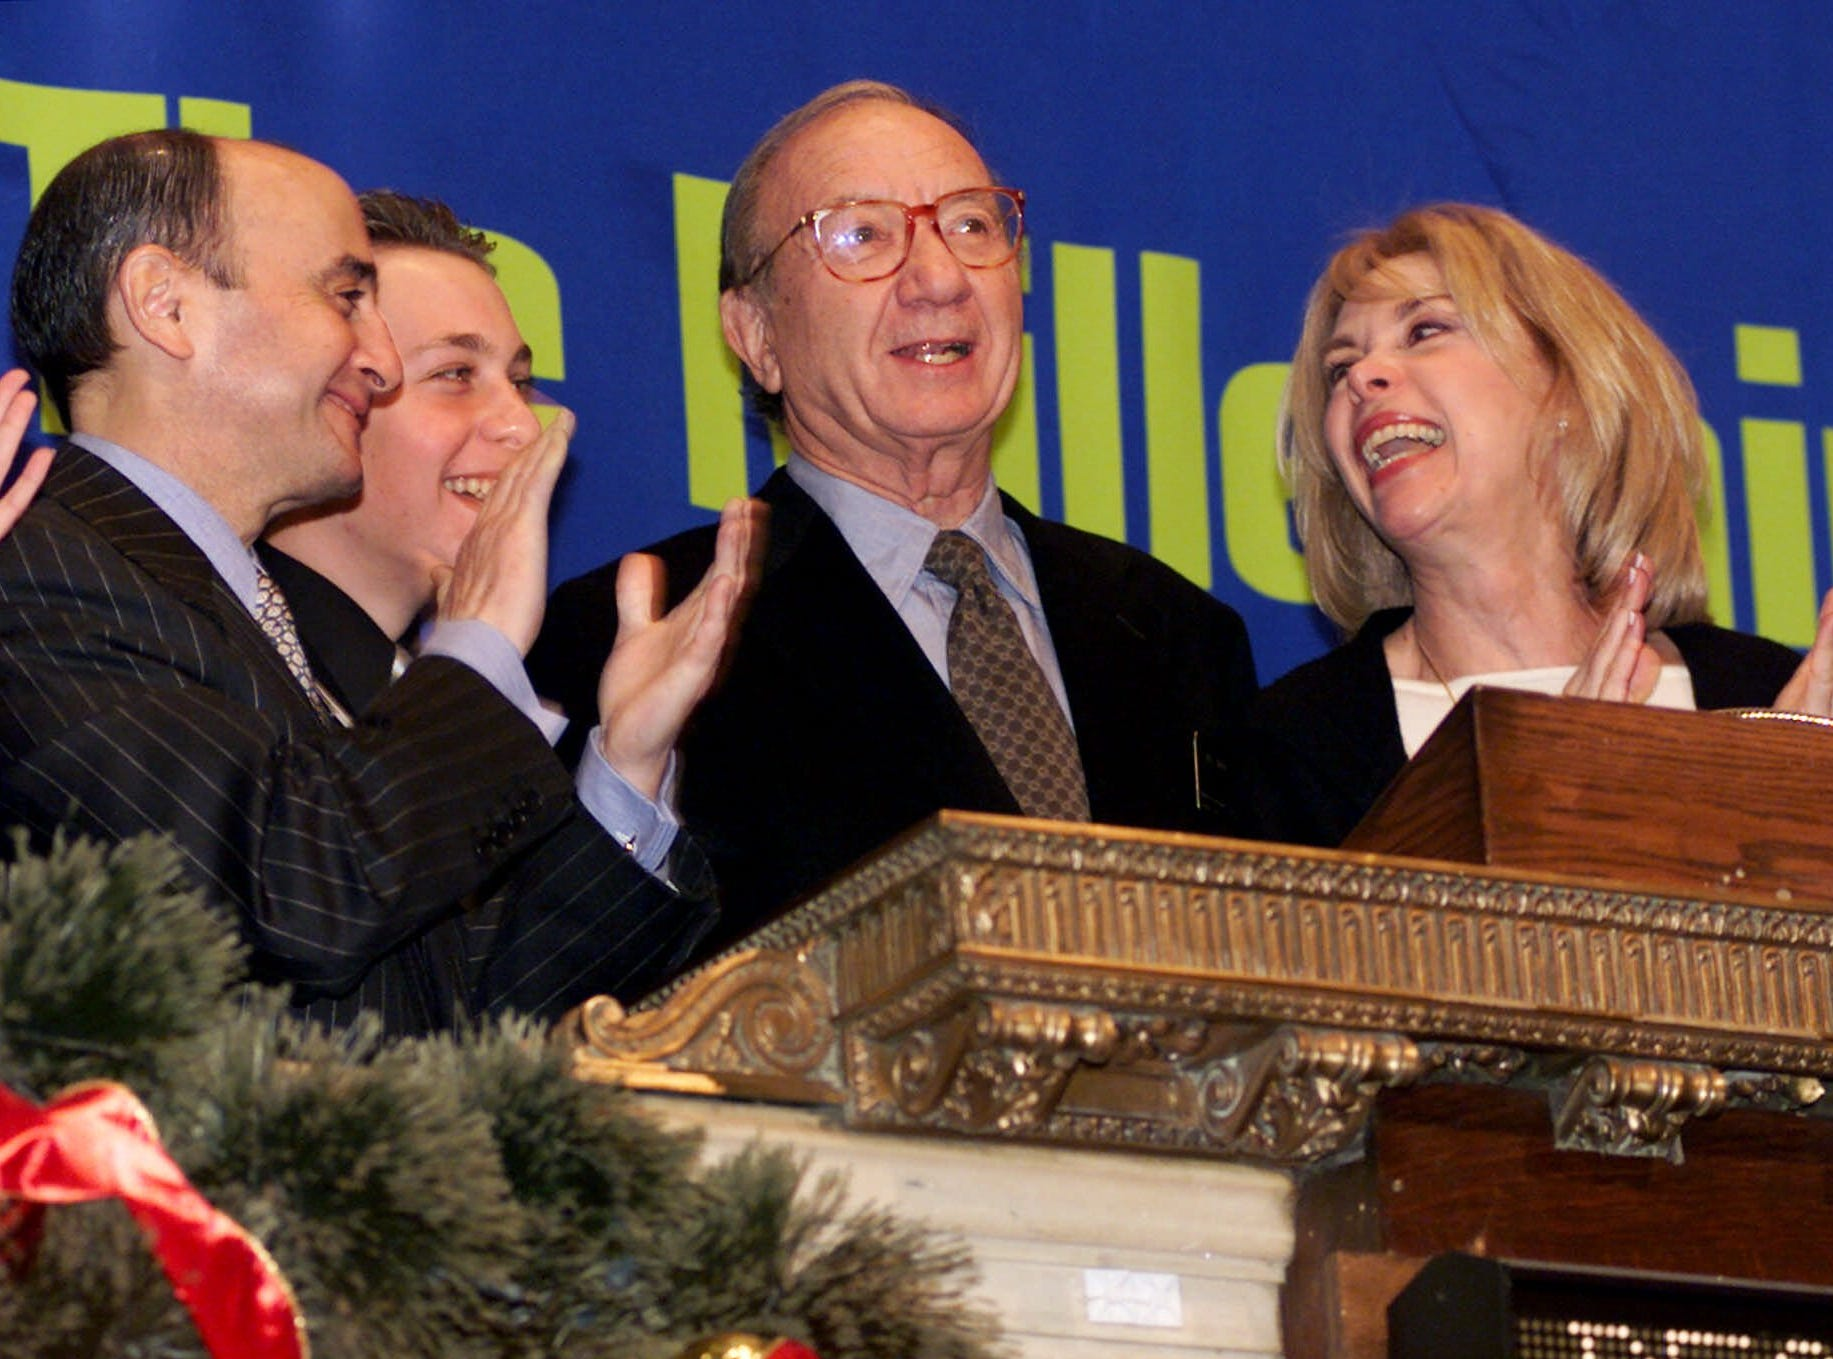 Playwright Neil Simon third left, is applauded as he rings the New York Stock Exchange opening bell, Monday Dec. 27, 1999.  Simon is joined at the bell by NYSE Chairman Richard Grasso, left, Michael Levoff, Simon's stepson, second left, and wife Elaine Joyce Simon, as part of the NYSE Bridging the Millennium series. (AP Photo/Richard Drew)